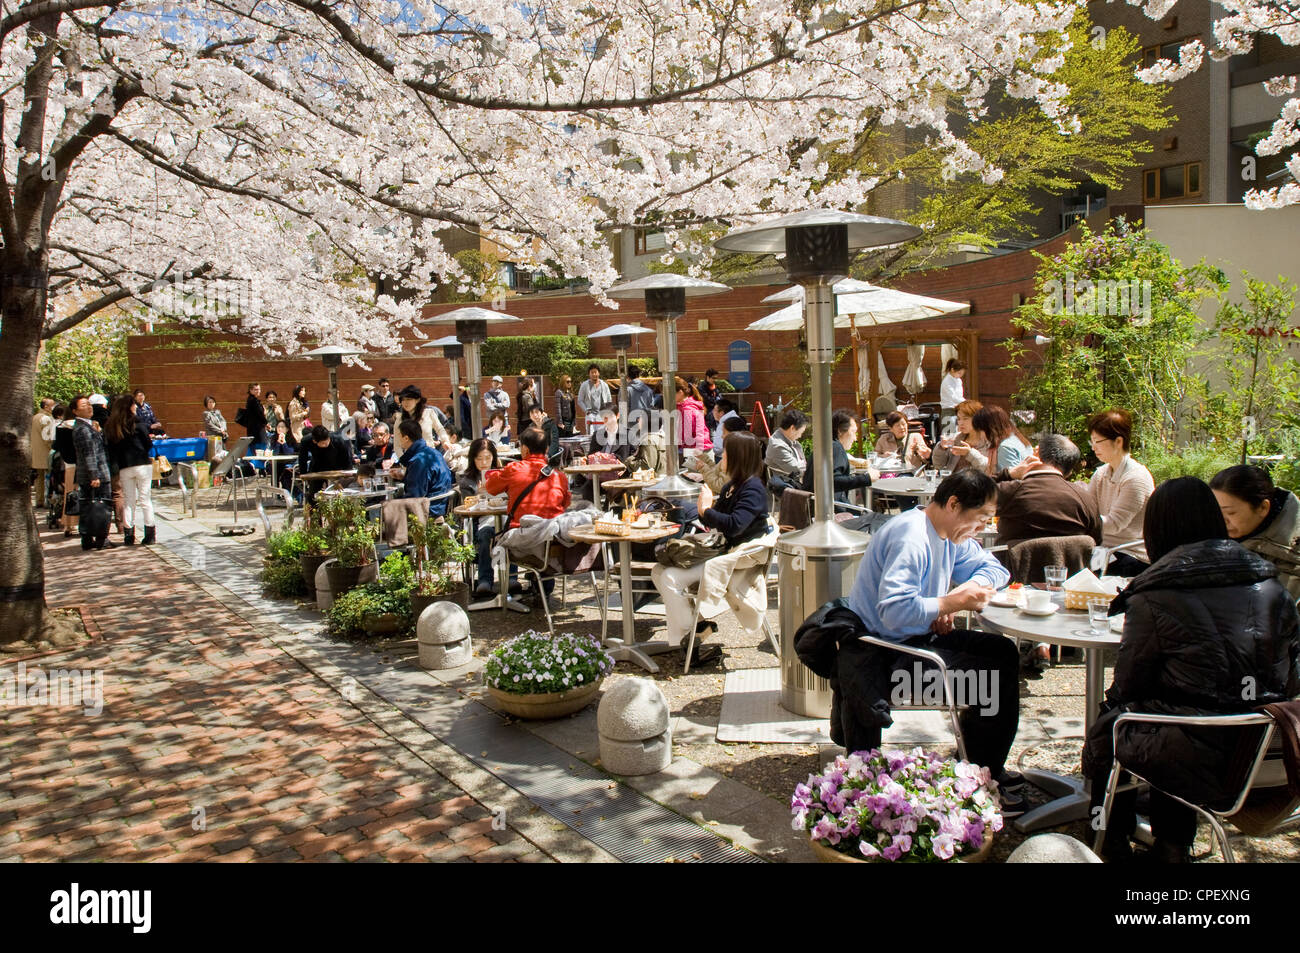 People enjoying the sakura cherry blossoms at an outdoor cafe in central Tokyo, Japan - Stock Image